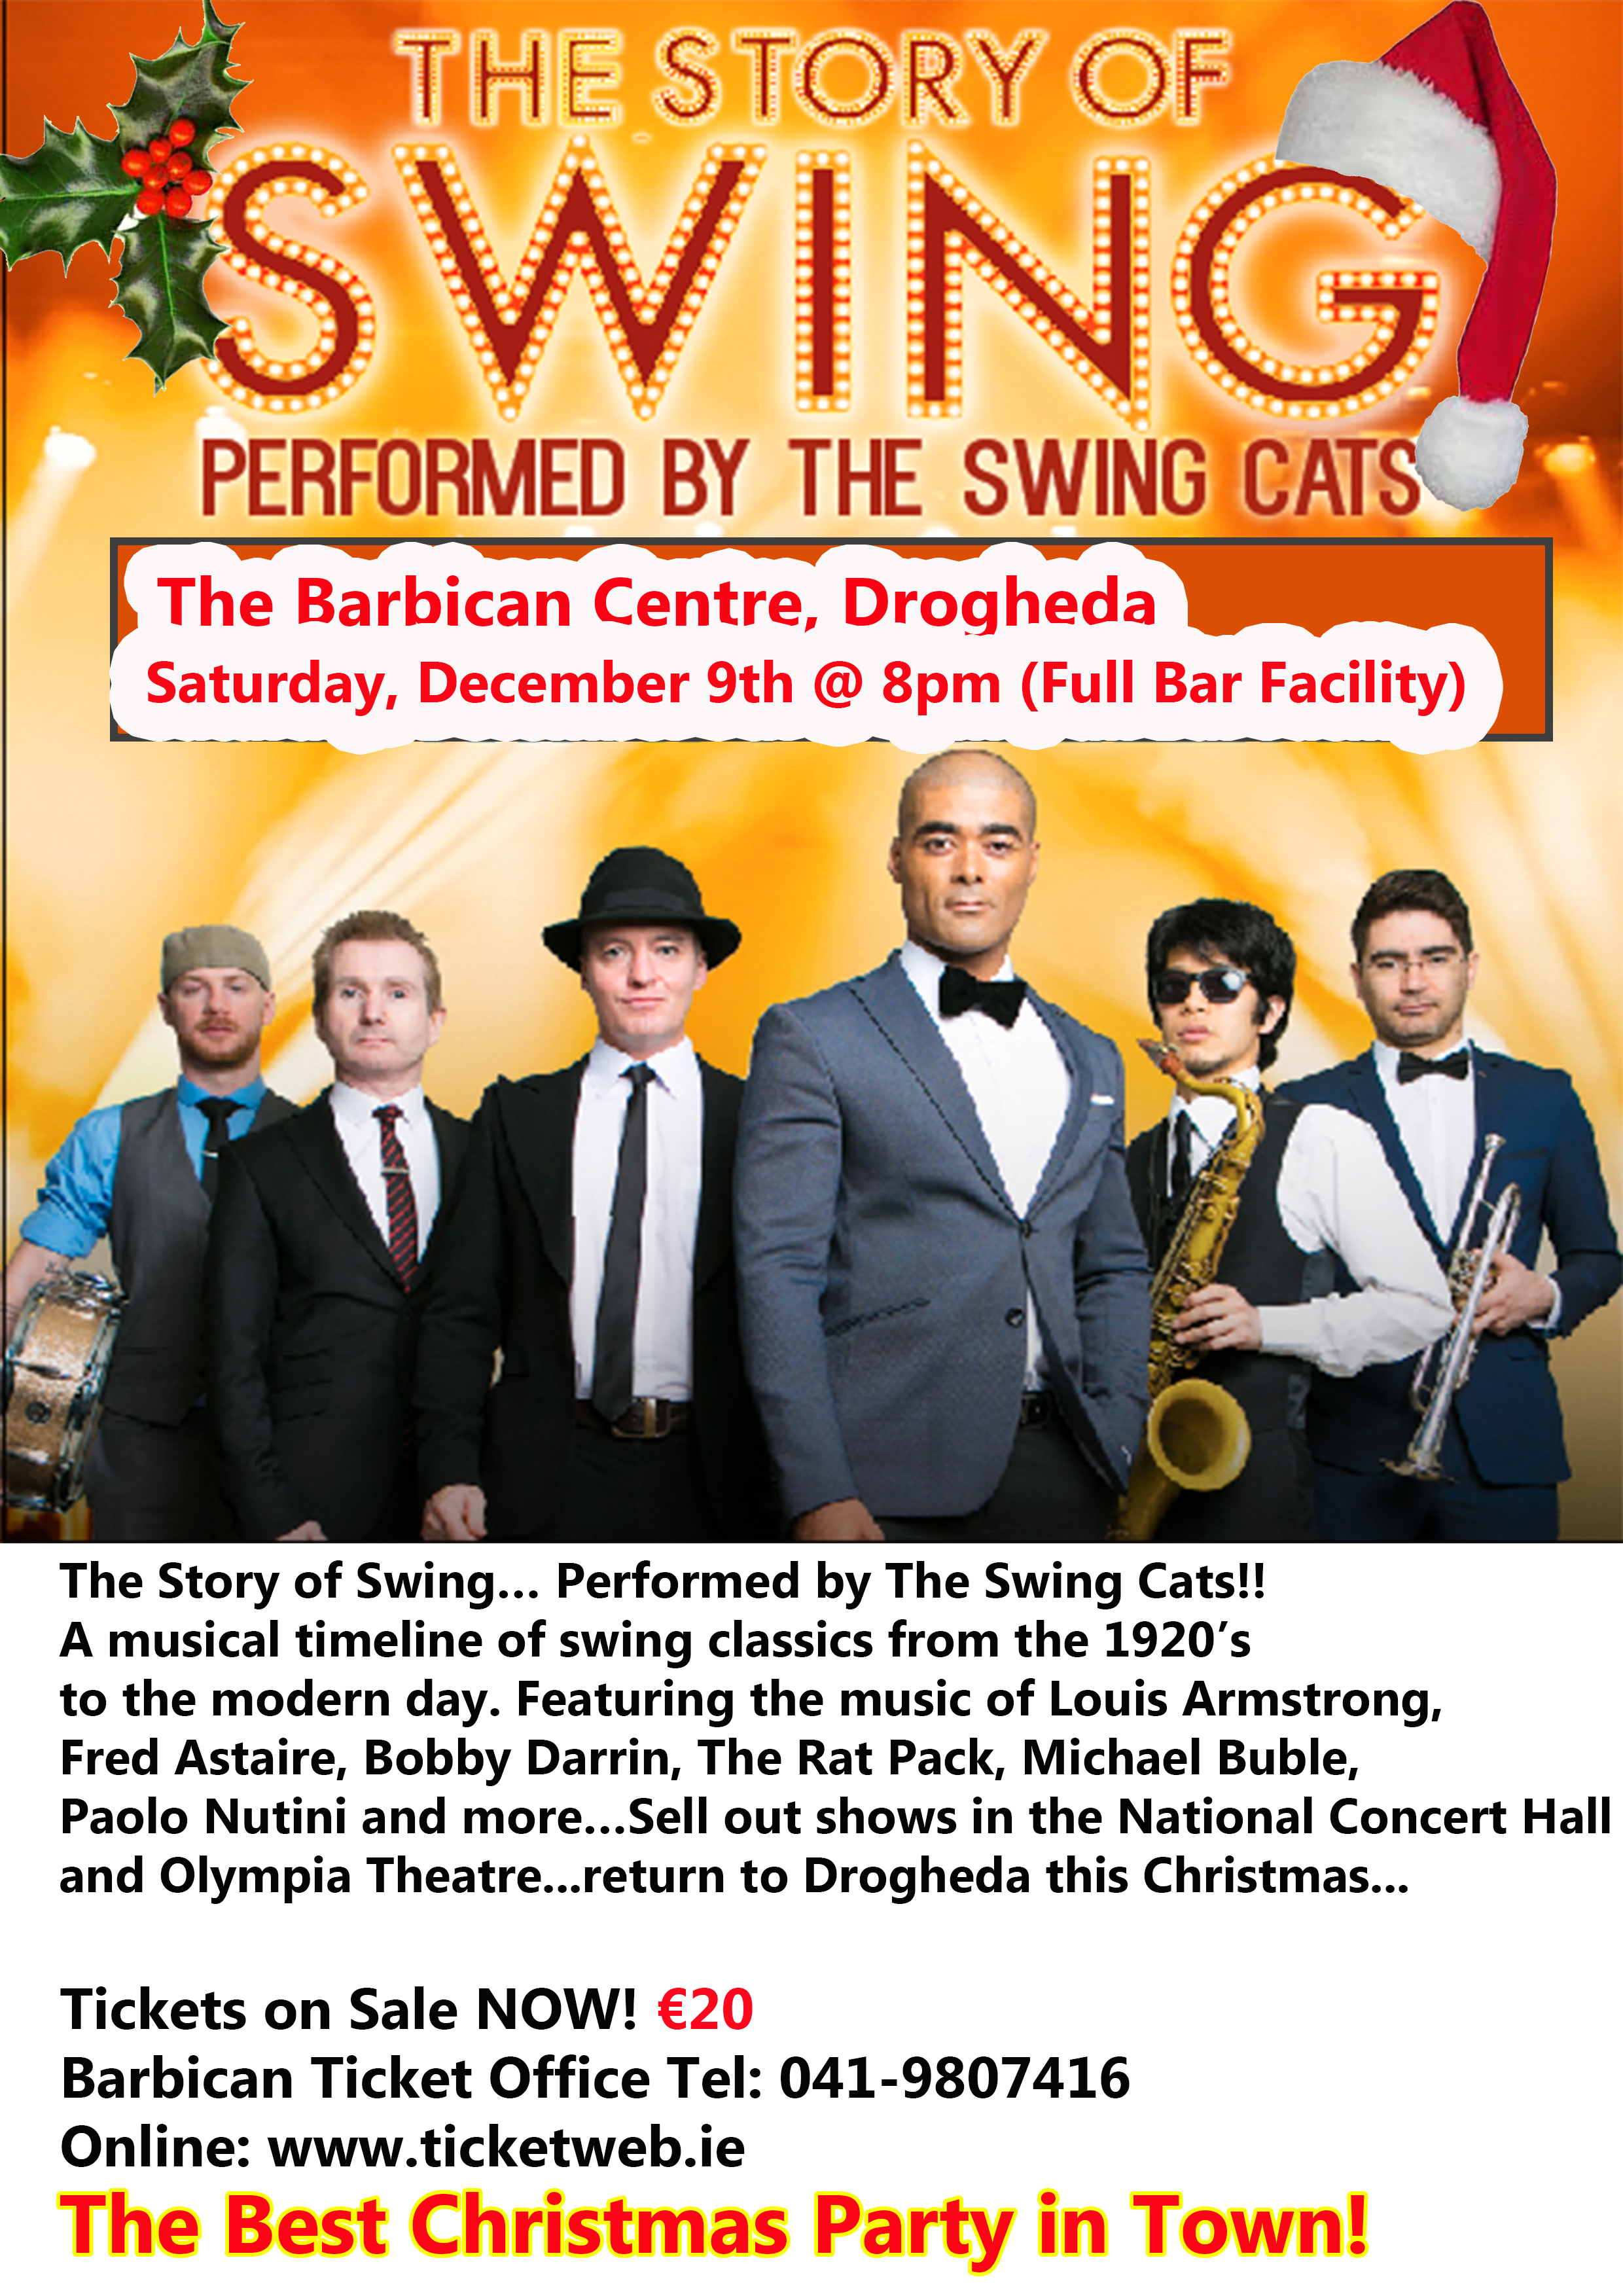 The Swing Cats - The Story of Swing - The Barbican Centre